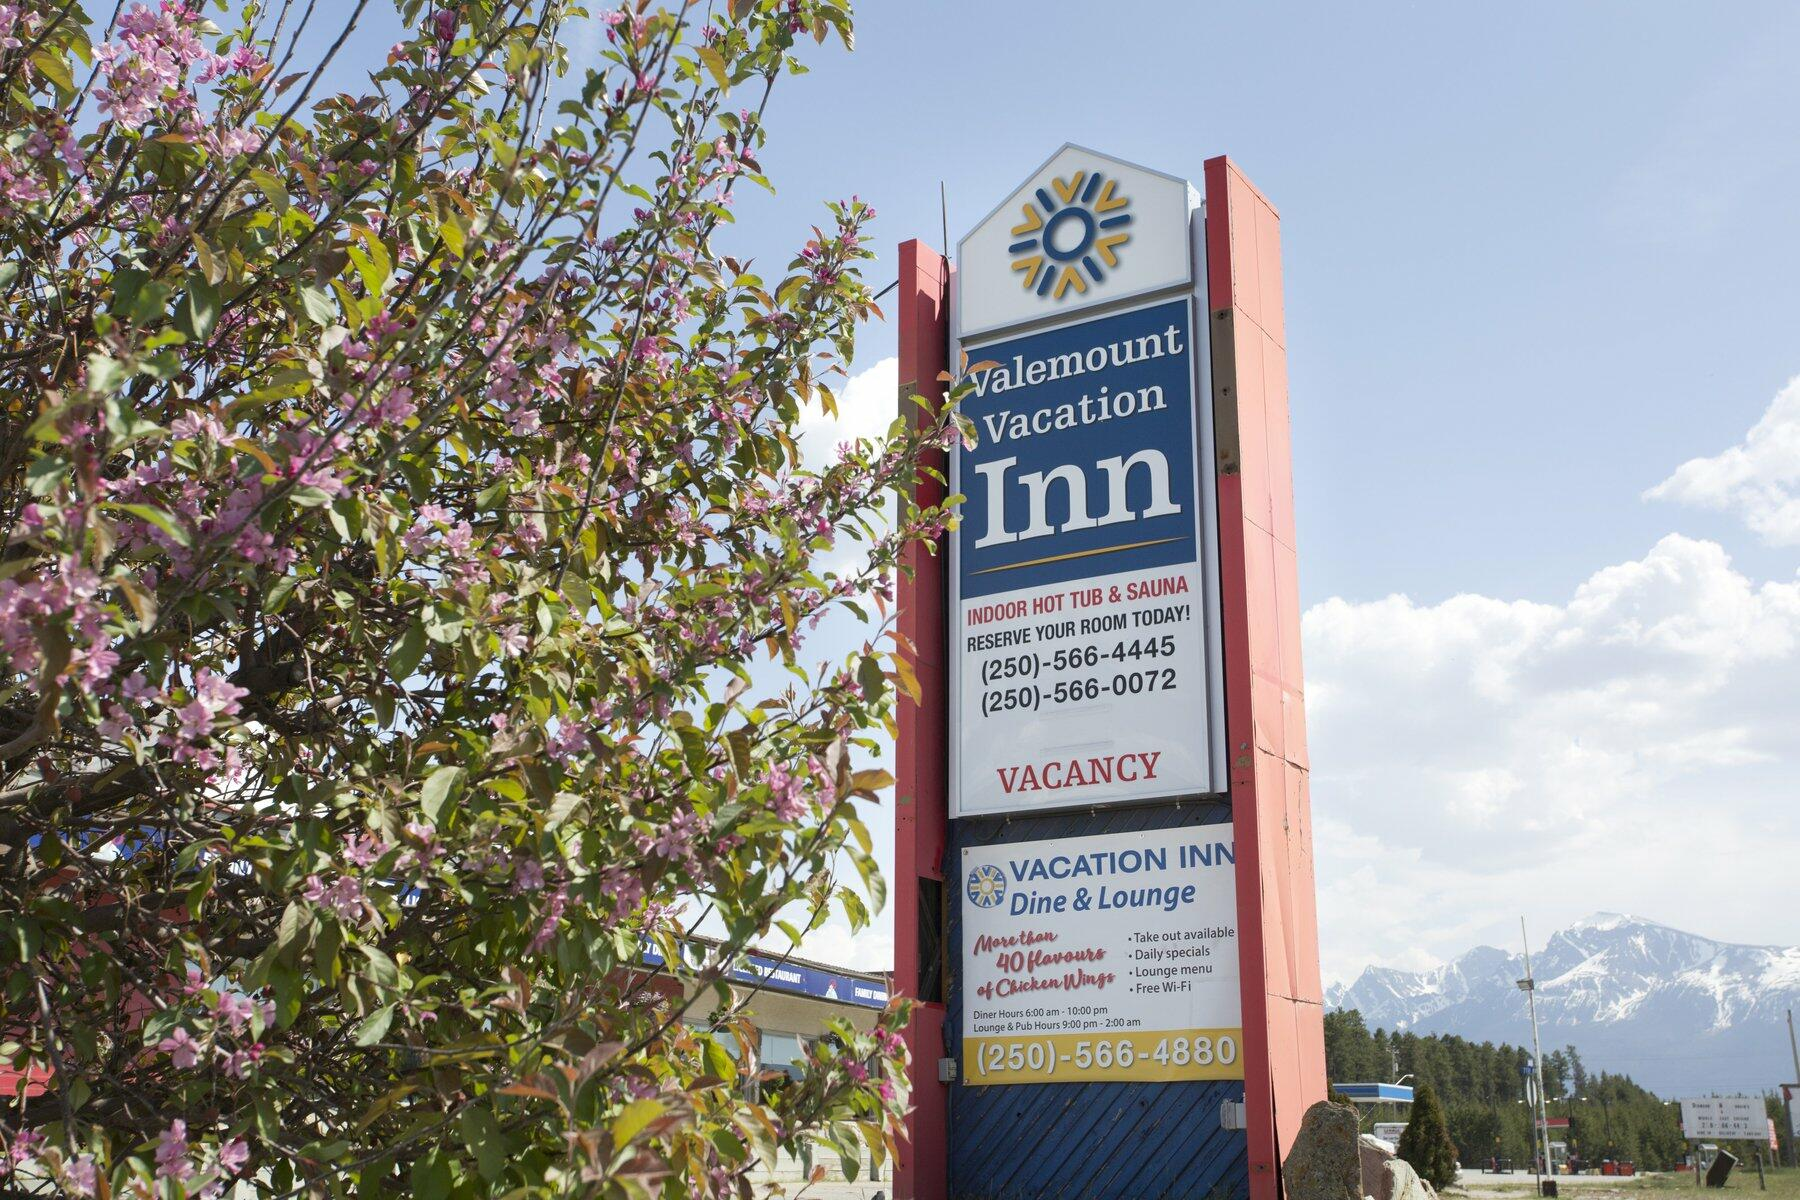 Valemount Vacation Inn Exterior